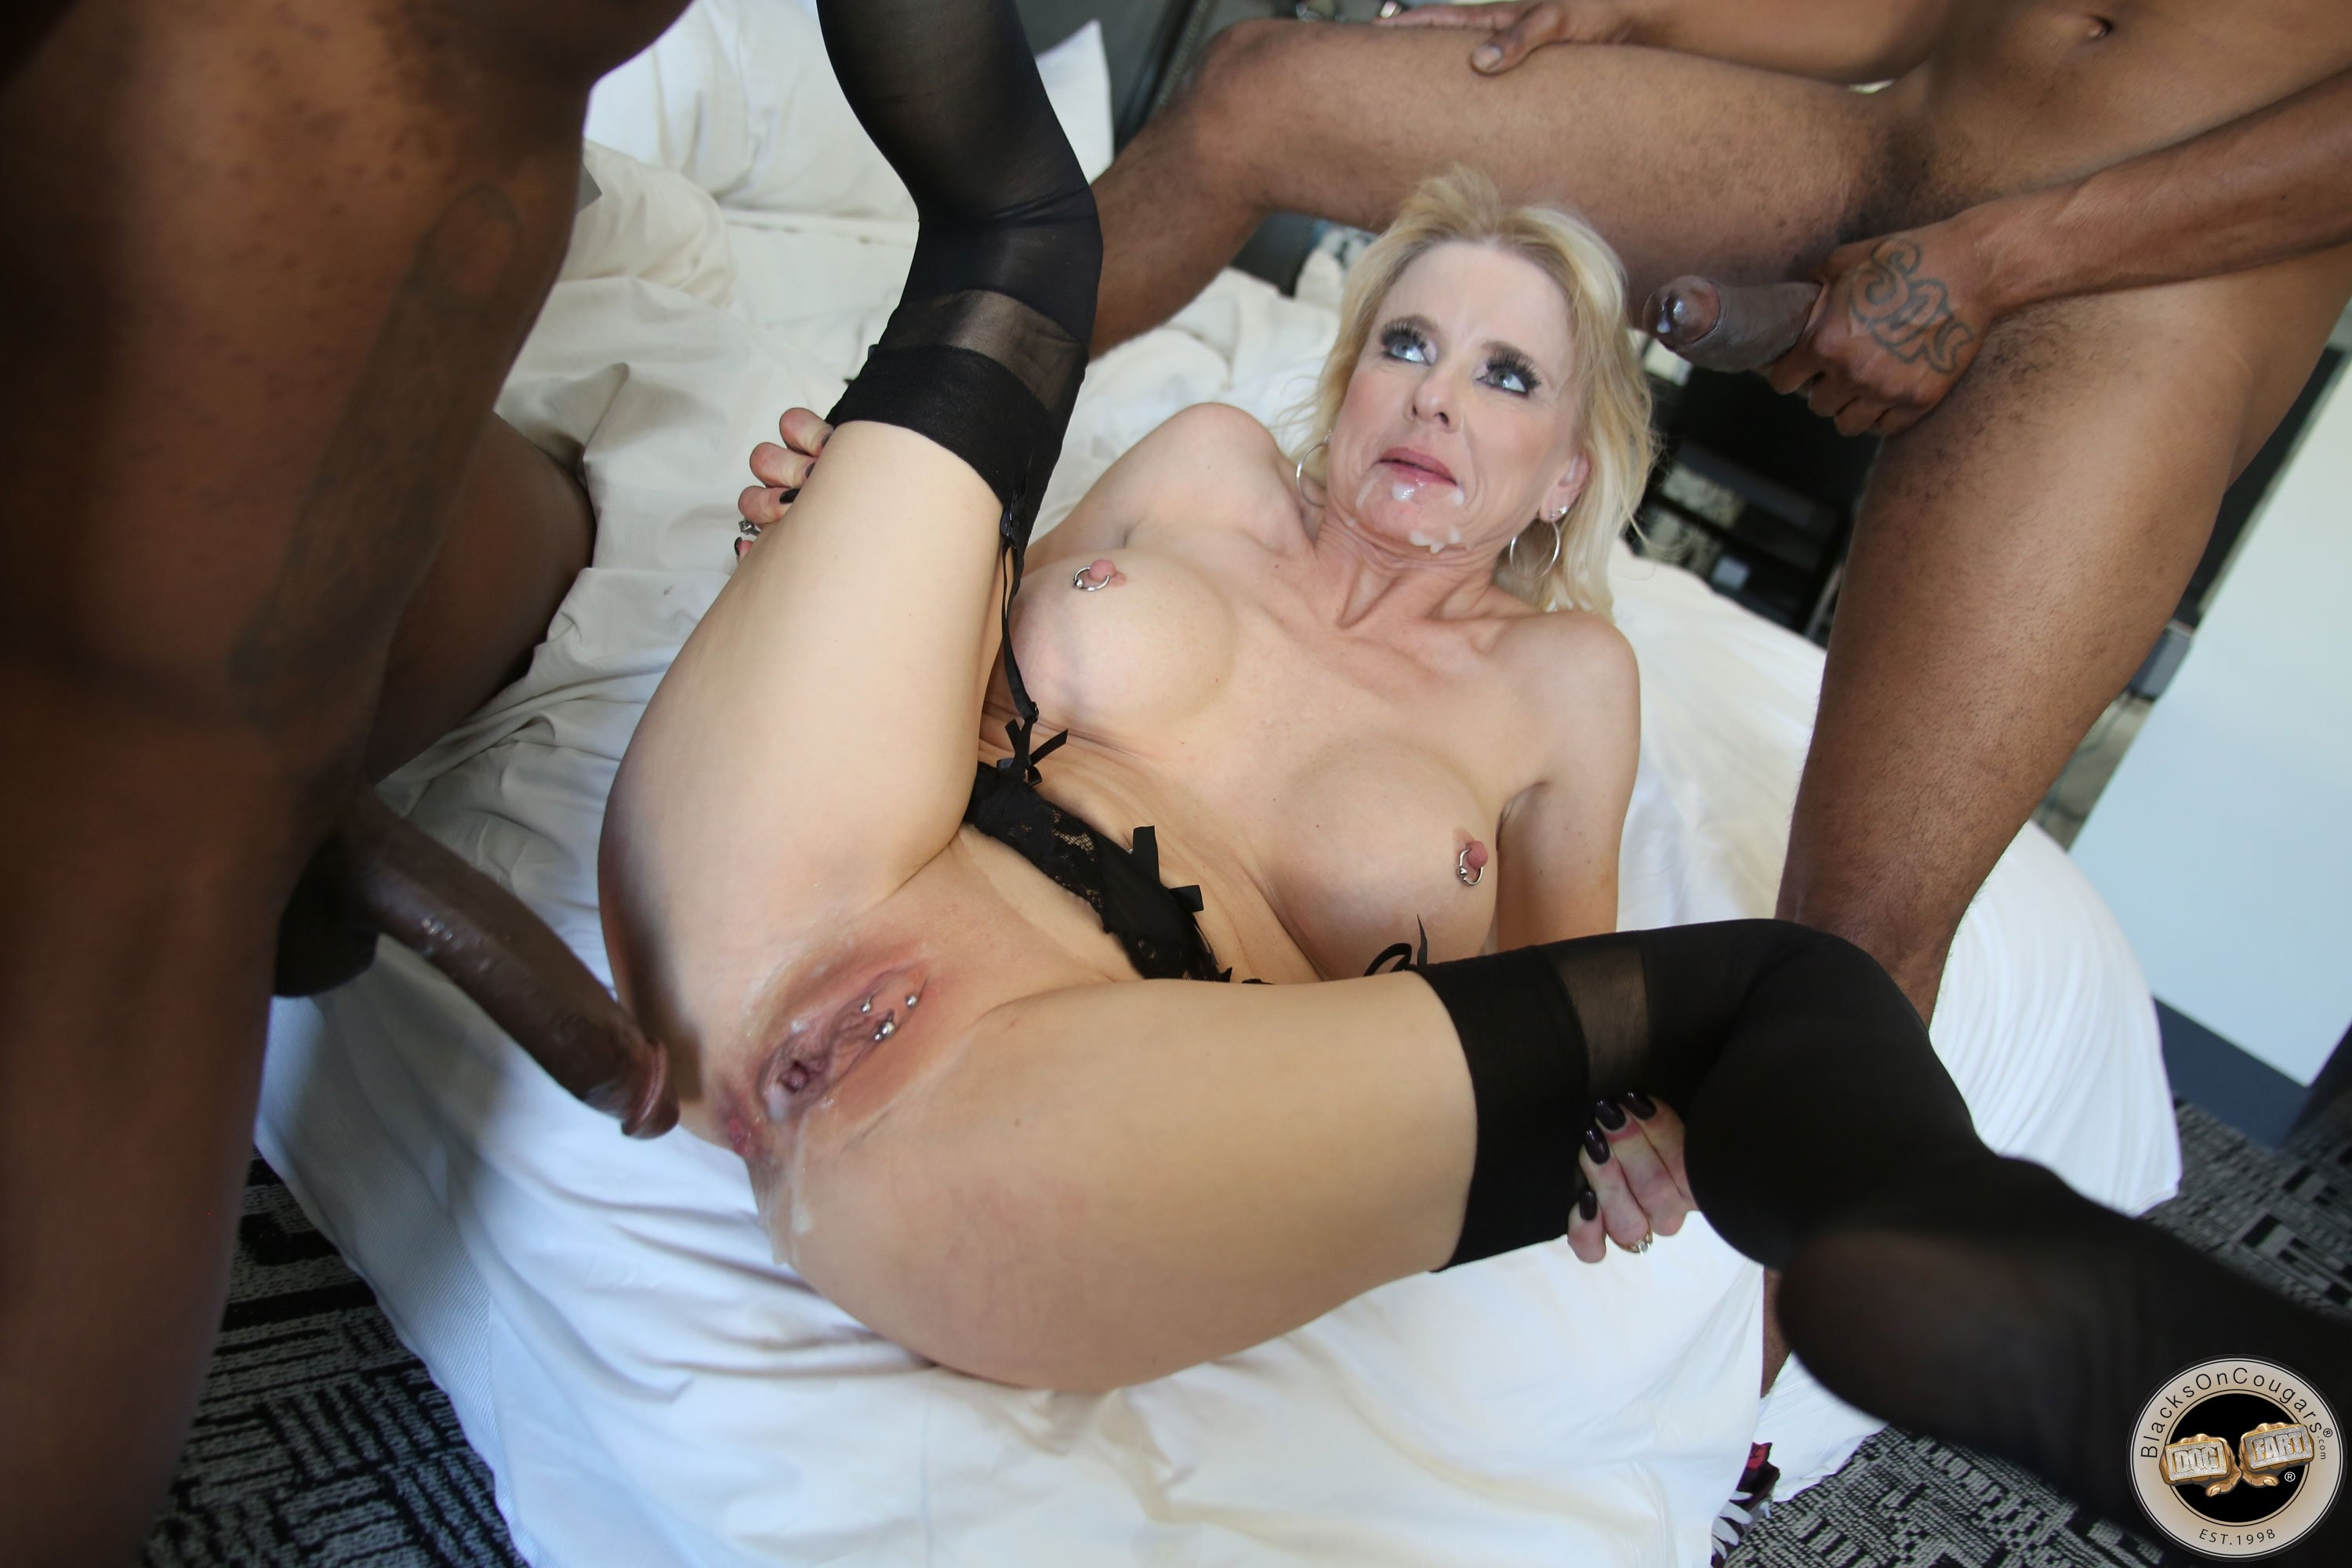 best of Boy free mature pic